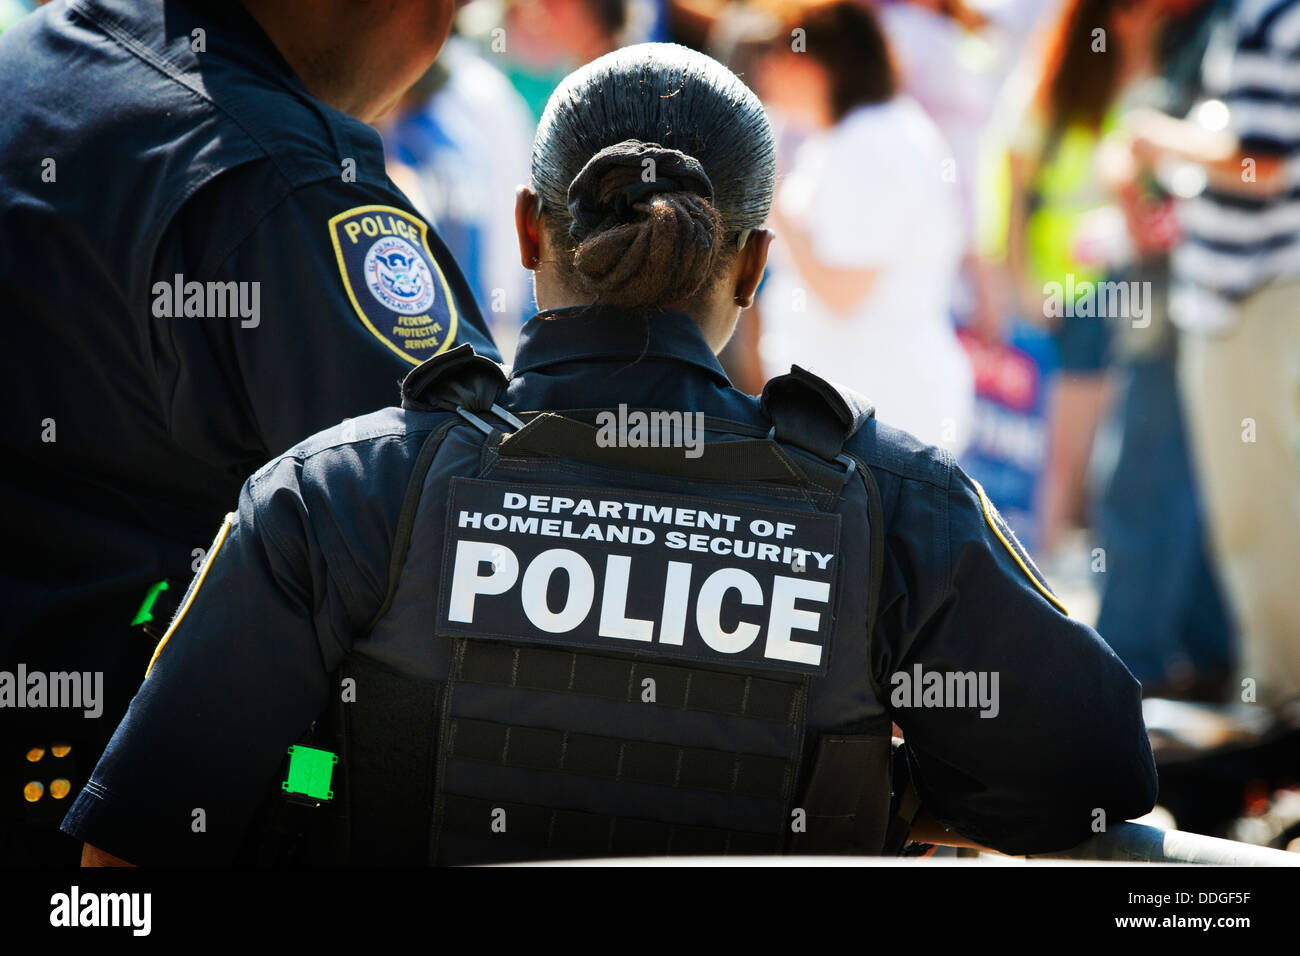 Dhs Police Stock Photos  Dhs Police Stock Images  Alamy